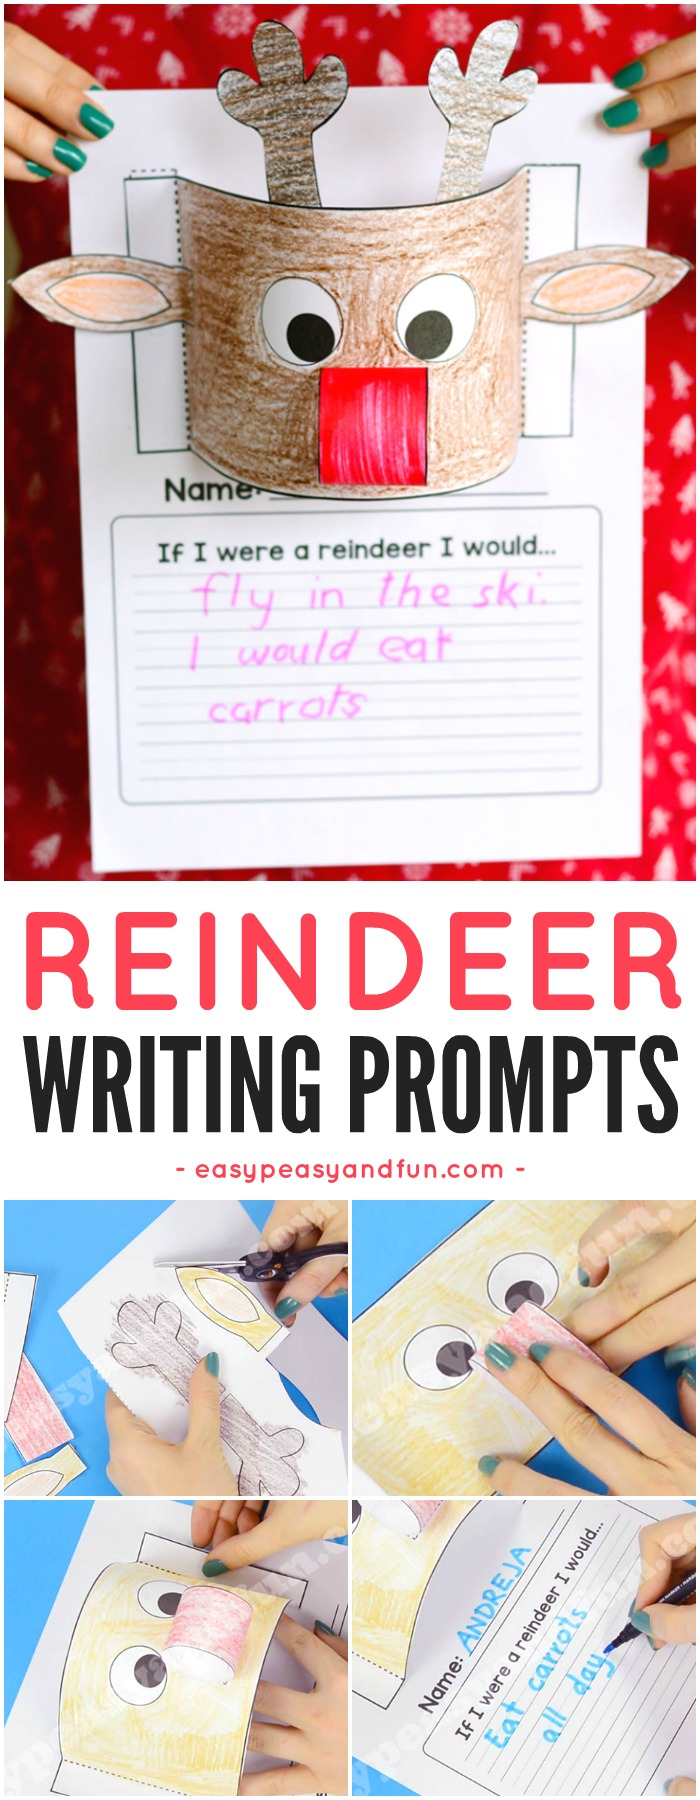 Reindeer Writing Prompt and reindeer paper craft idea for kids to make.